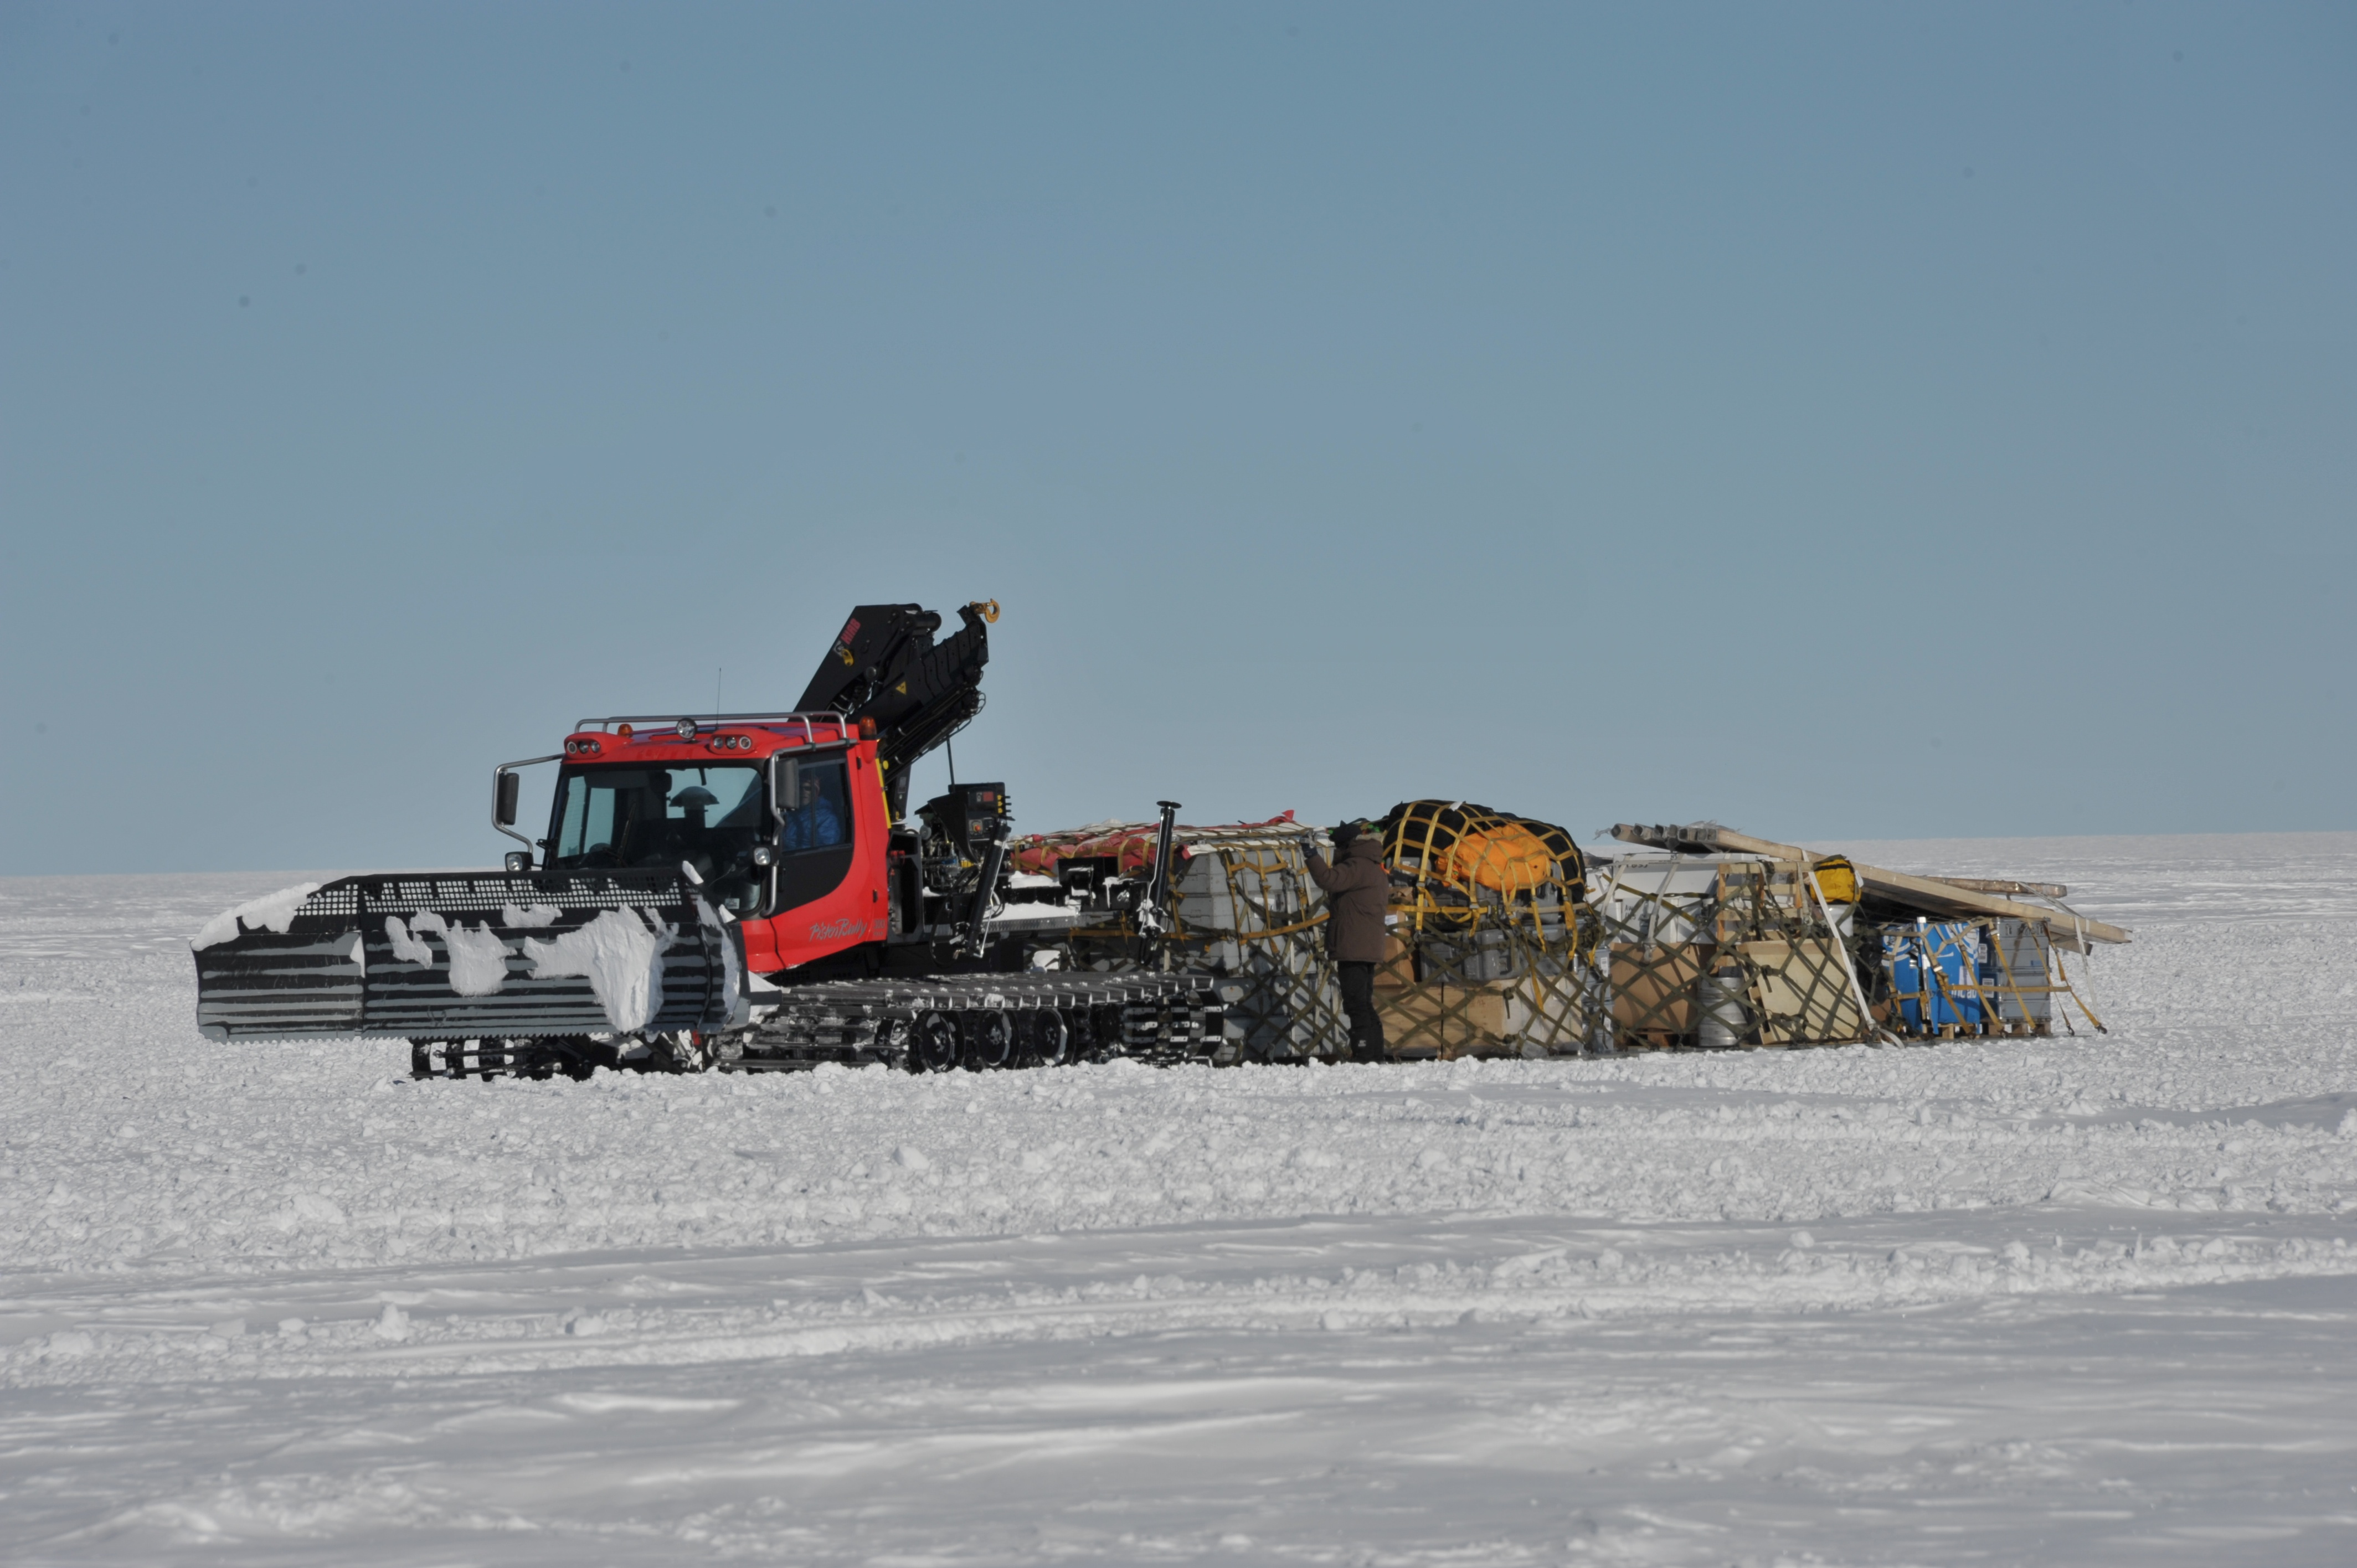 Pistenbully dragging 4 pallets of newly arrived cargo into camp